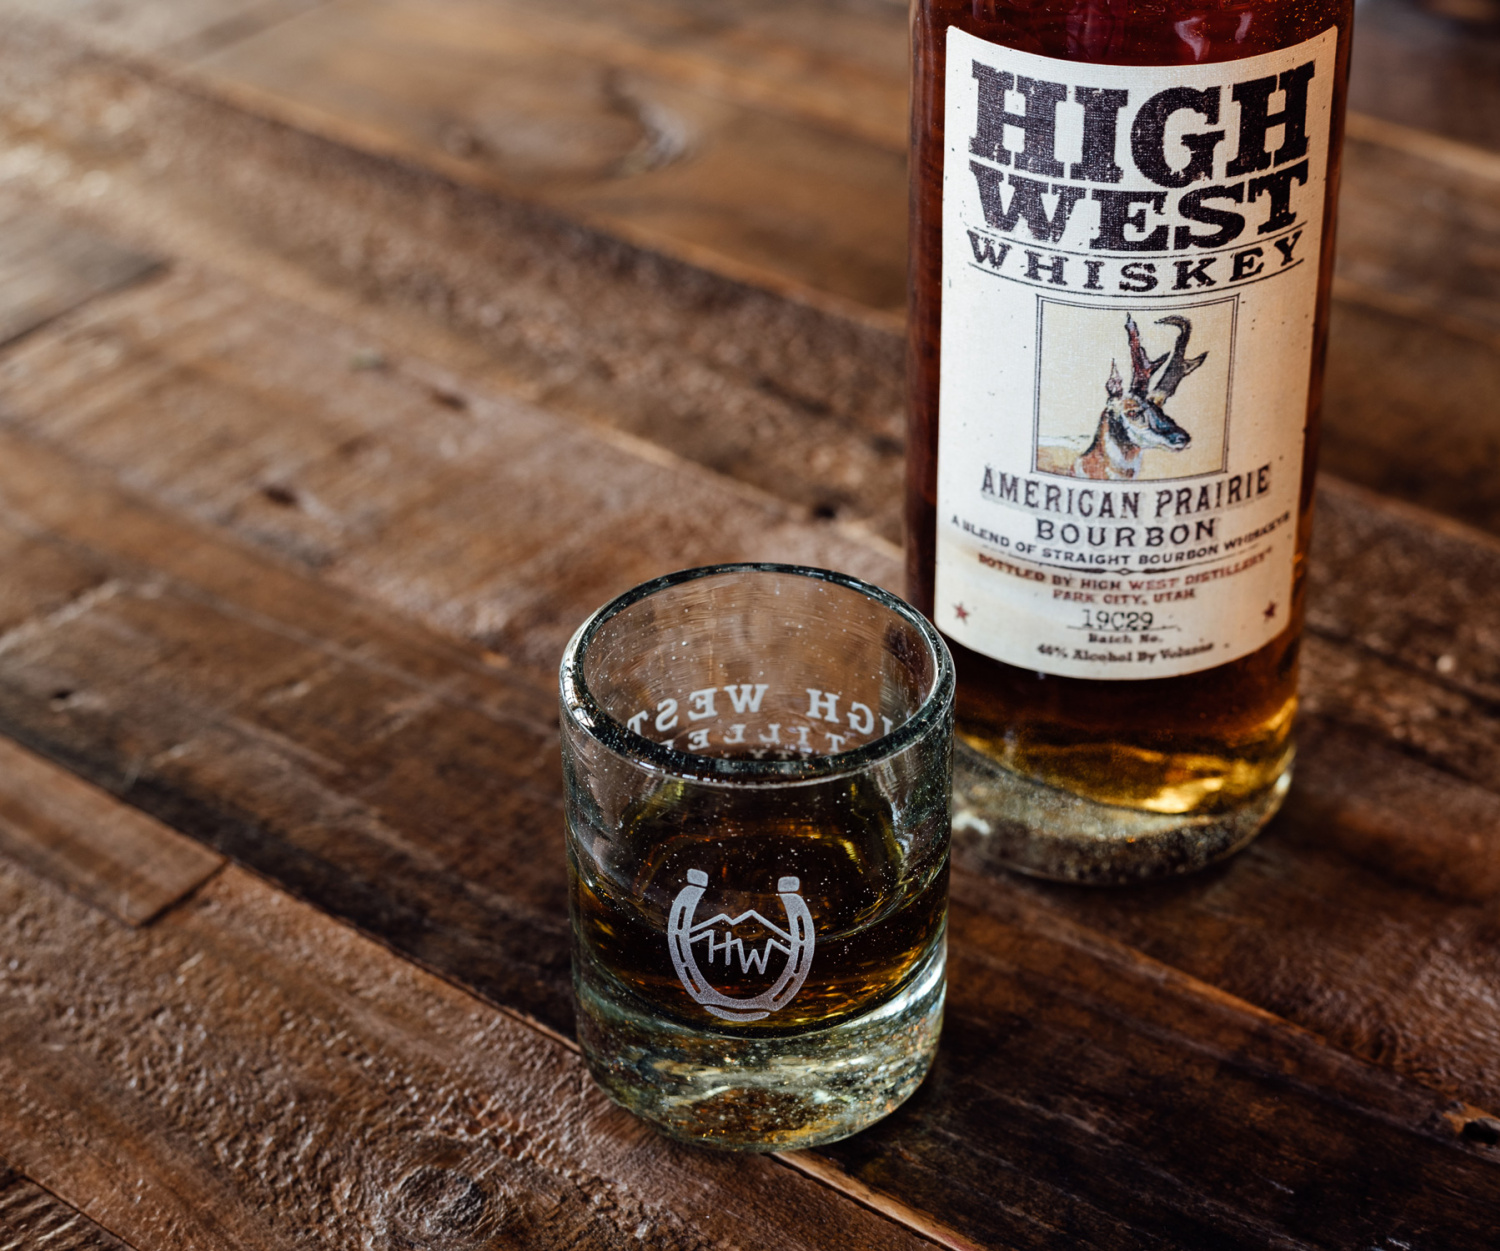 High West American craft whisky is now available at LCBO   A bottle of High West American Prairie Bourbon and a glass